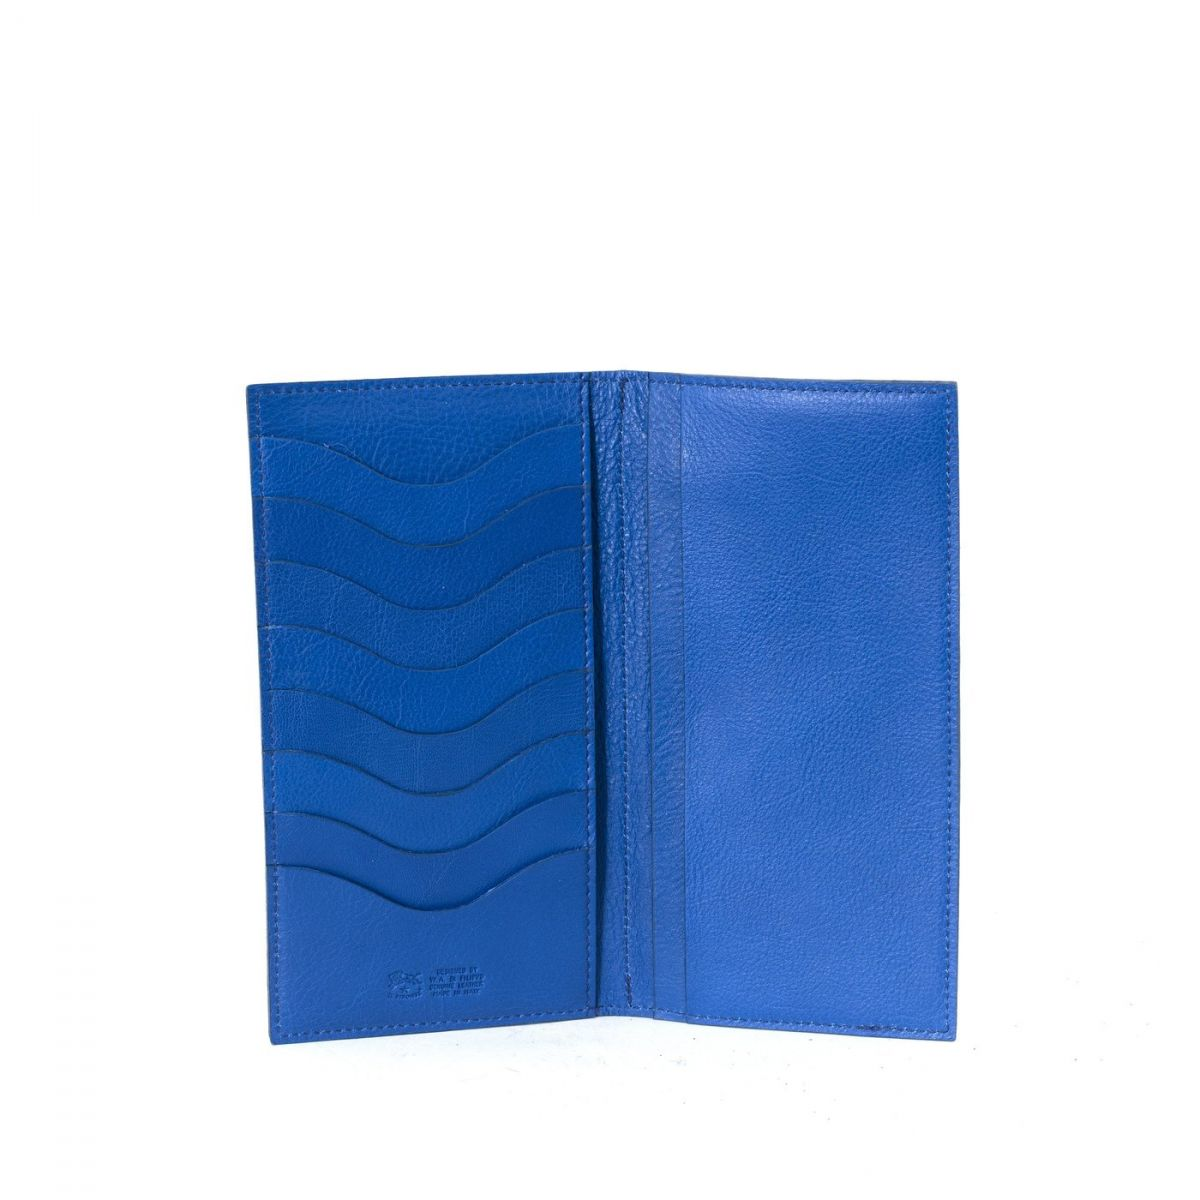 Wallet in Cowhide Leather SMW043 color Blueberry | Details